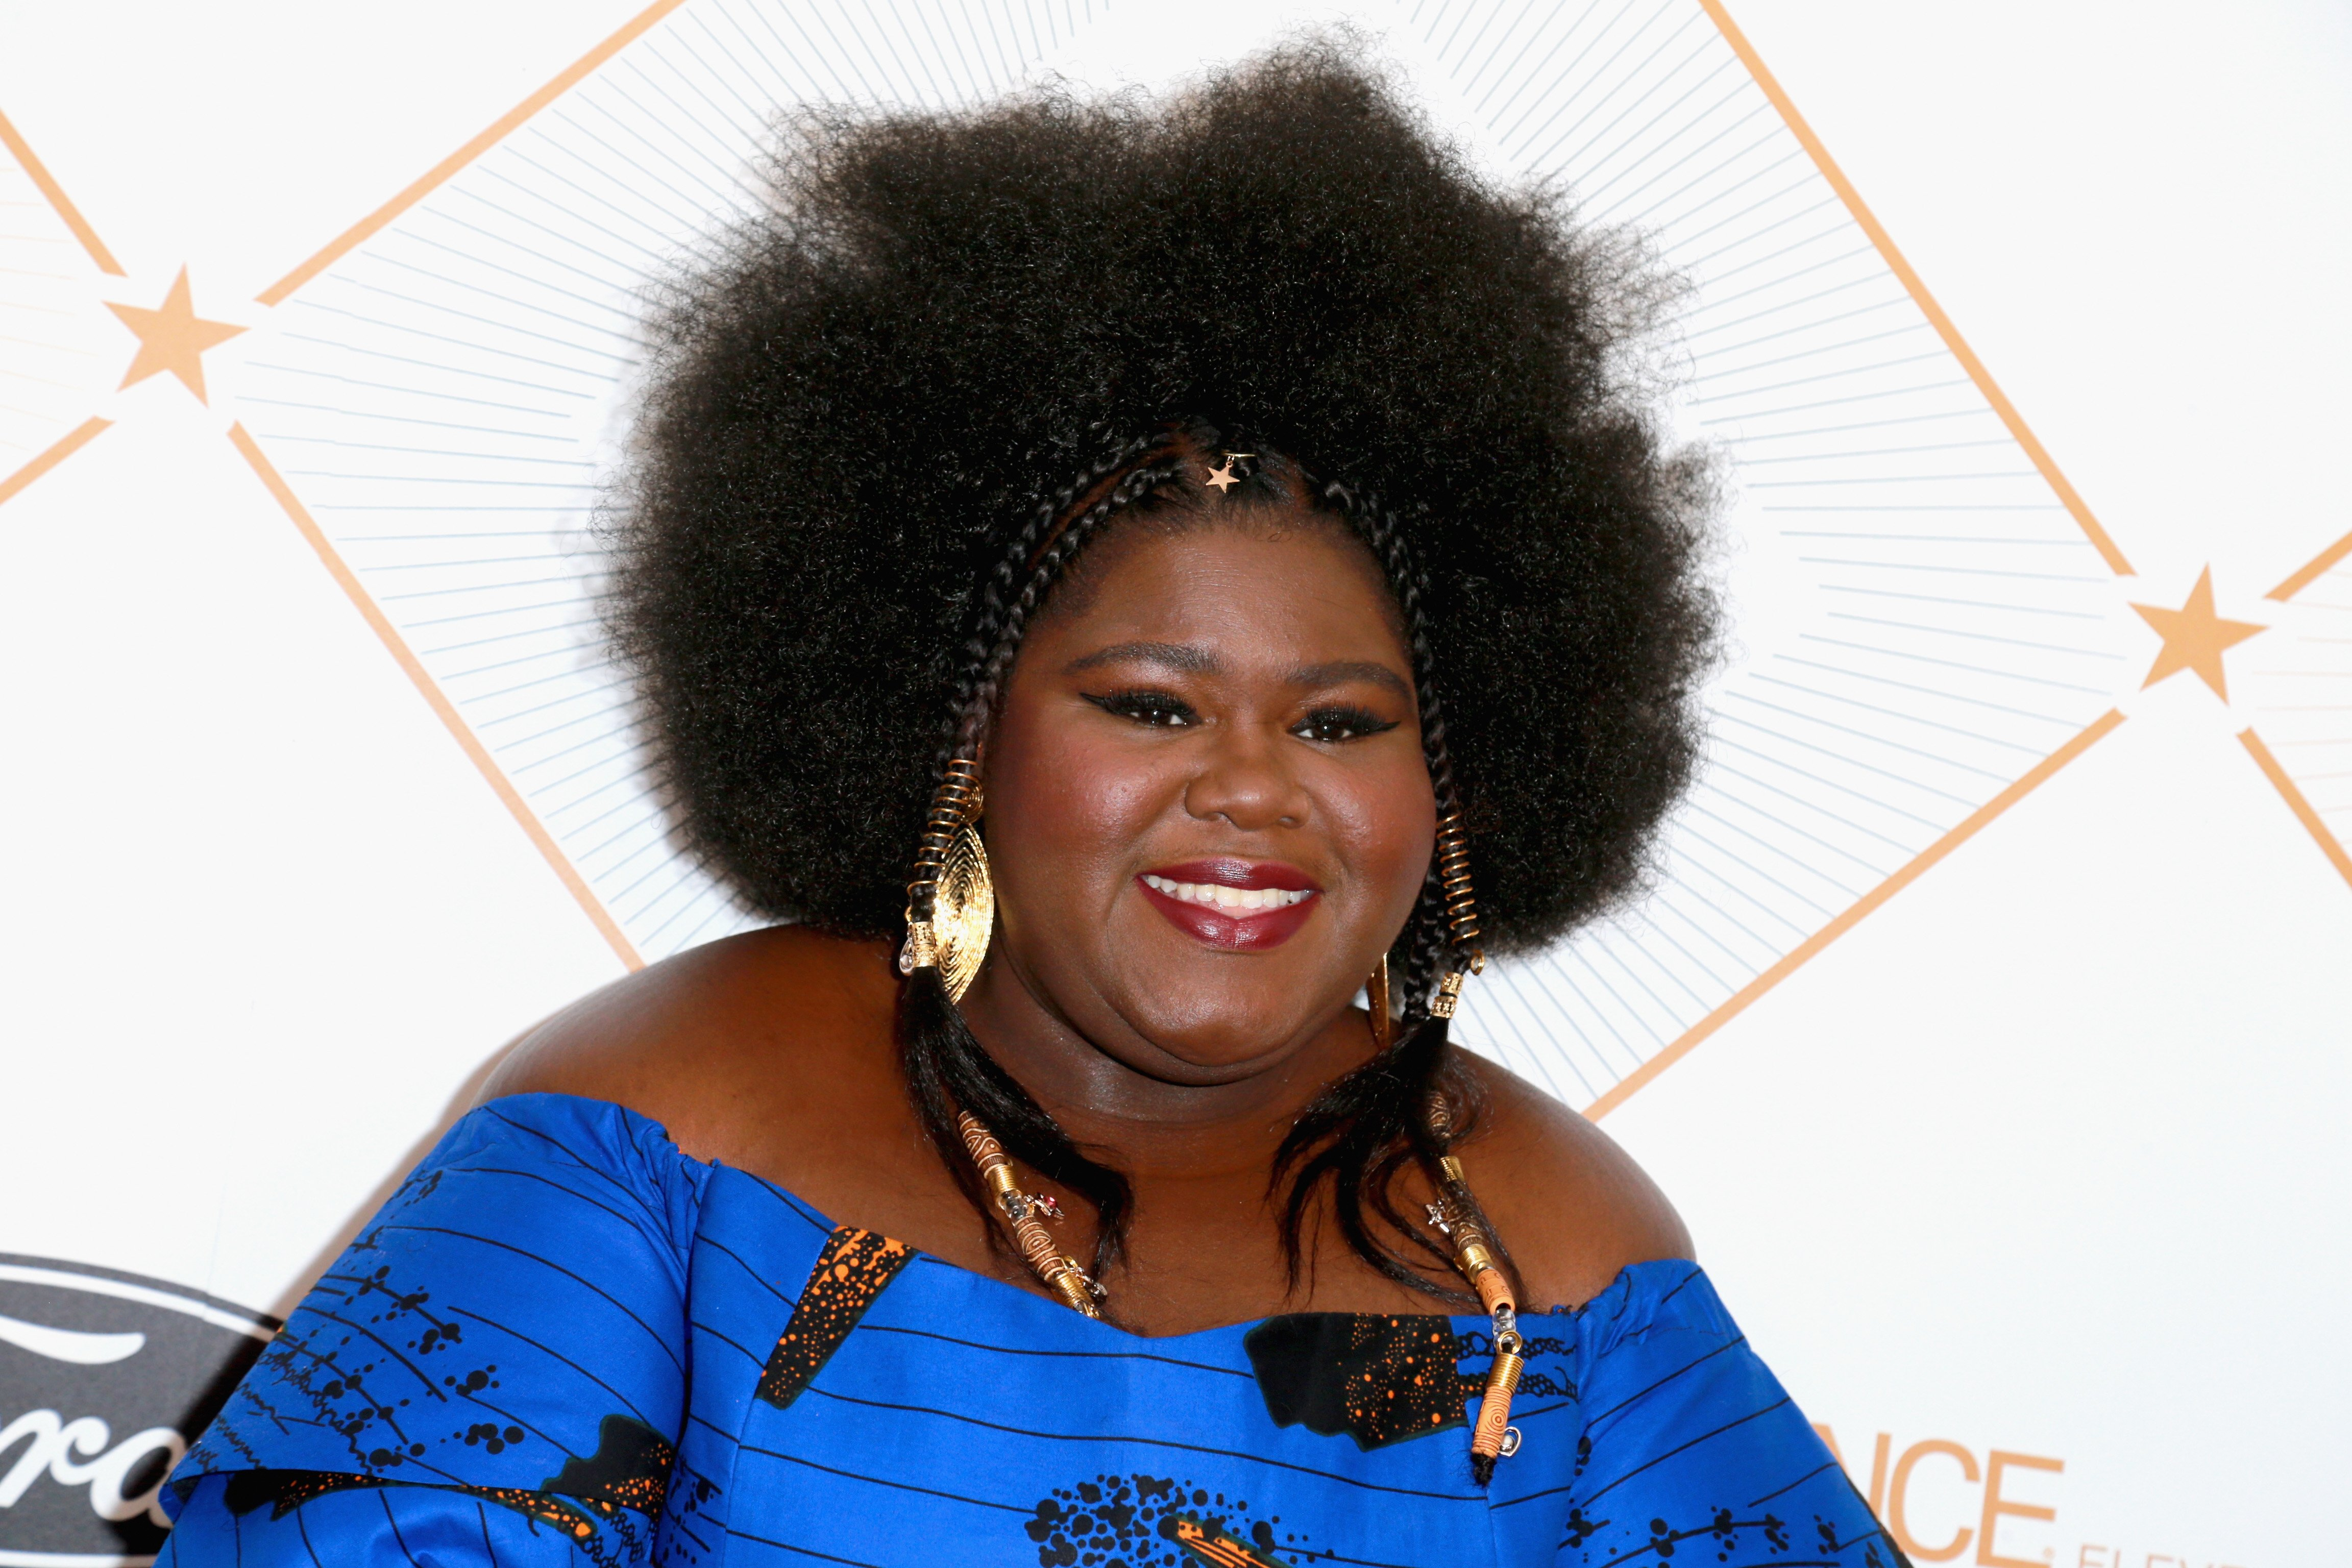 Gabourey Sidibe at the 2018 Essence Black Women In Hollywood Oscars Luncheon at Regent Beverly Wilshire Hotel on March 1, 2018 in Beverly Hills, California. Source: Getty Images